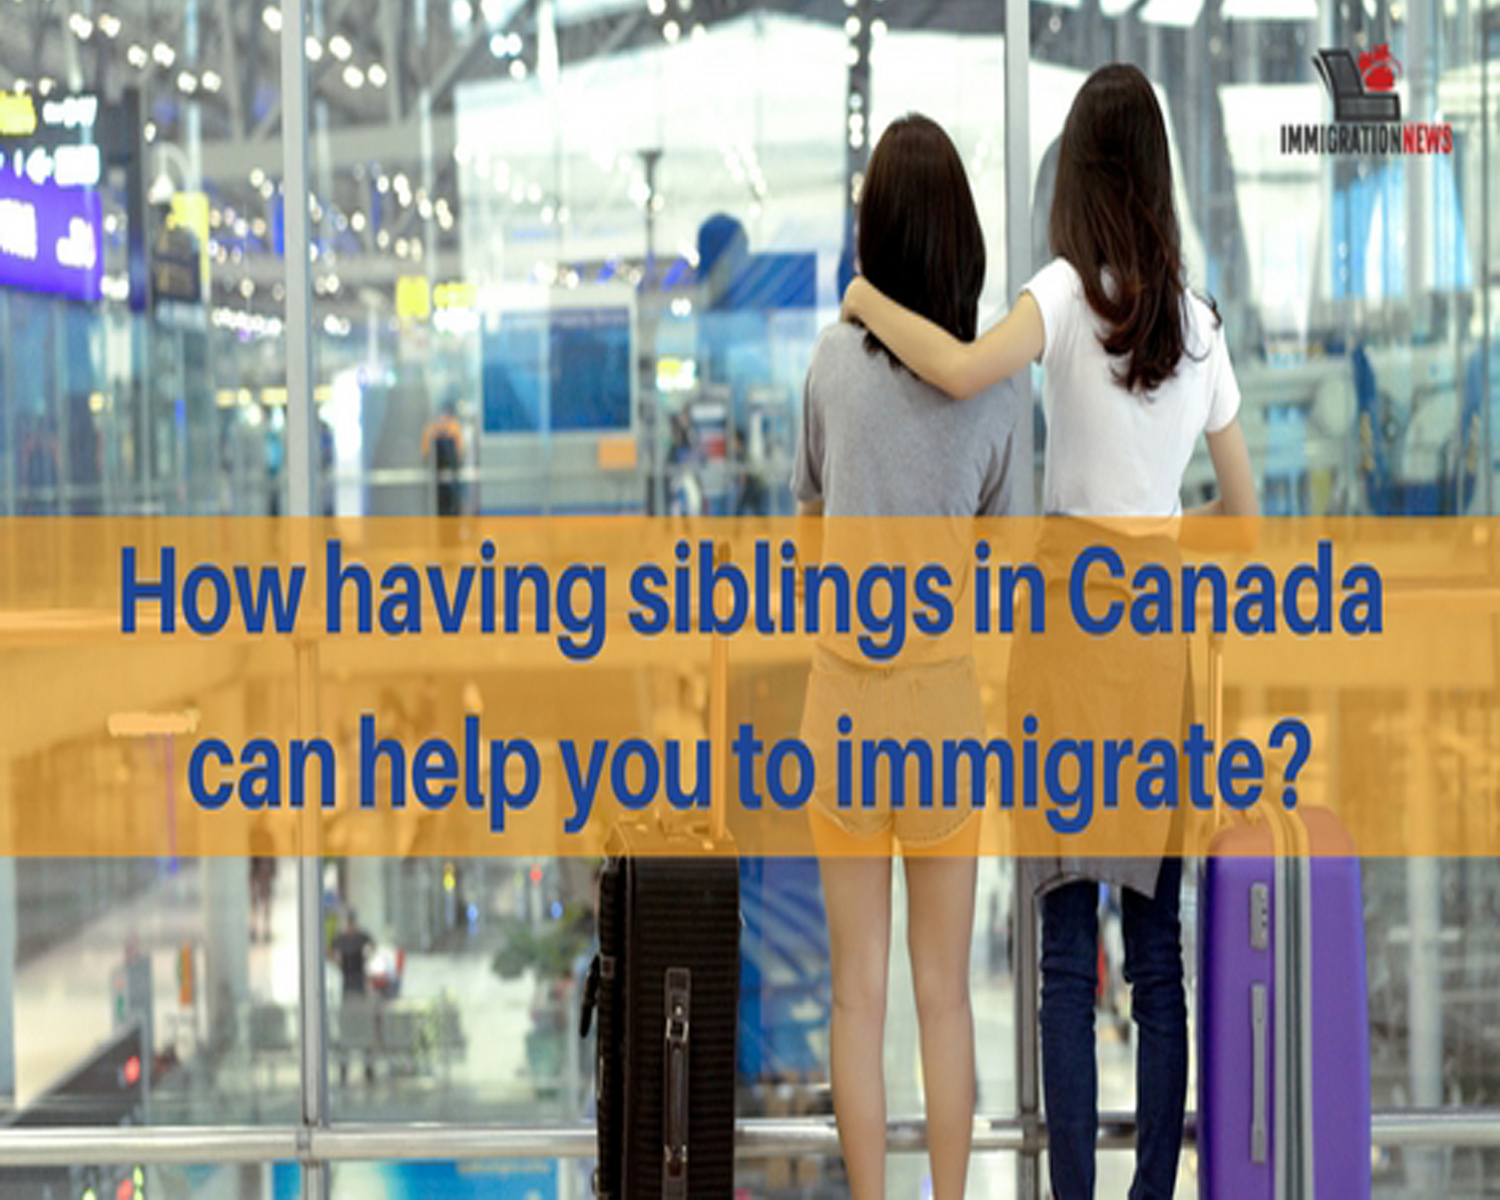 Process of sponsoring Siblings to Canada by A Canadian Permanent Resident Who is not yet a citizen)